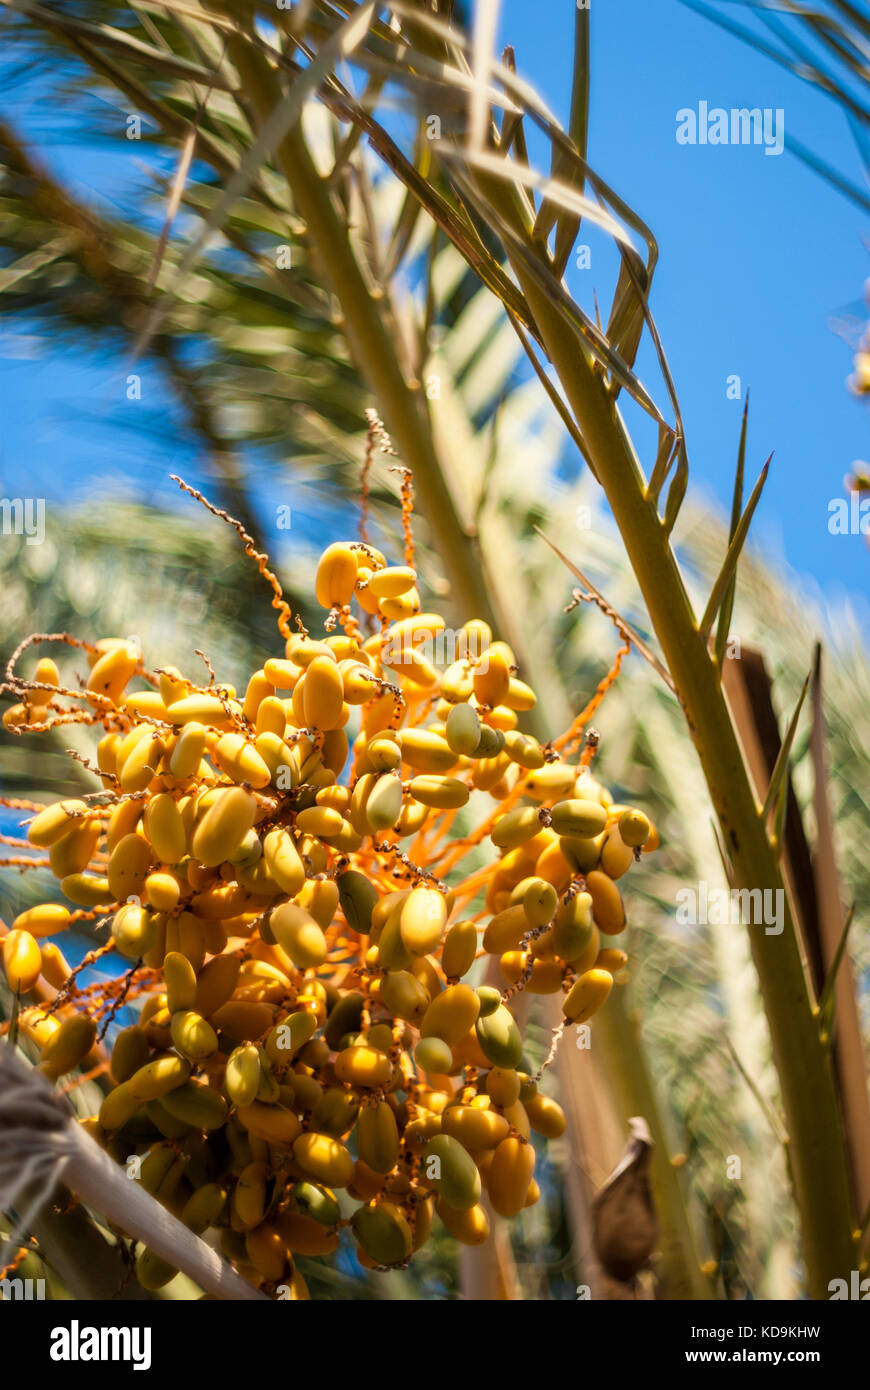 What are dates fruit in Brisbane